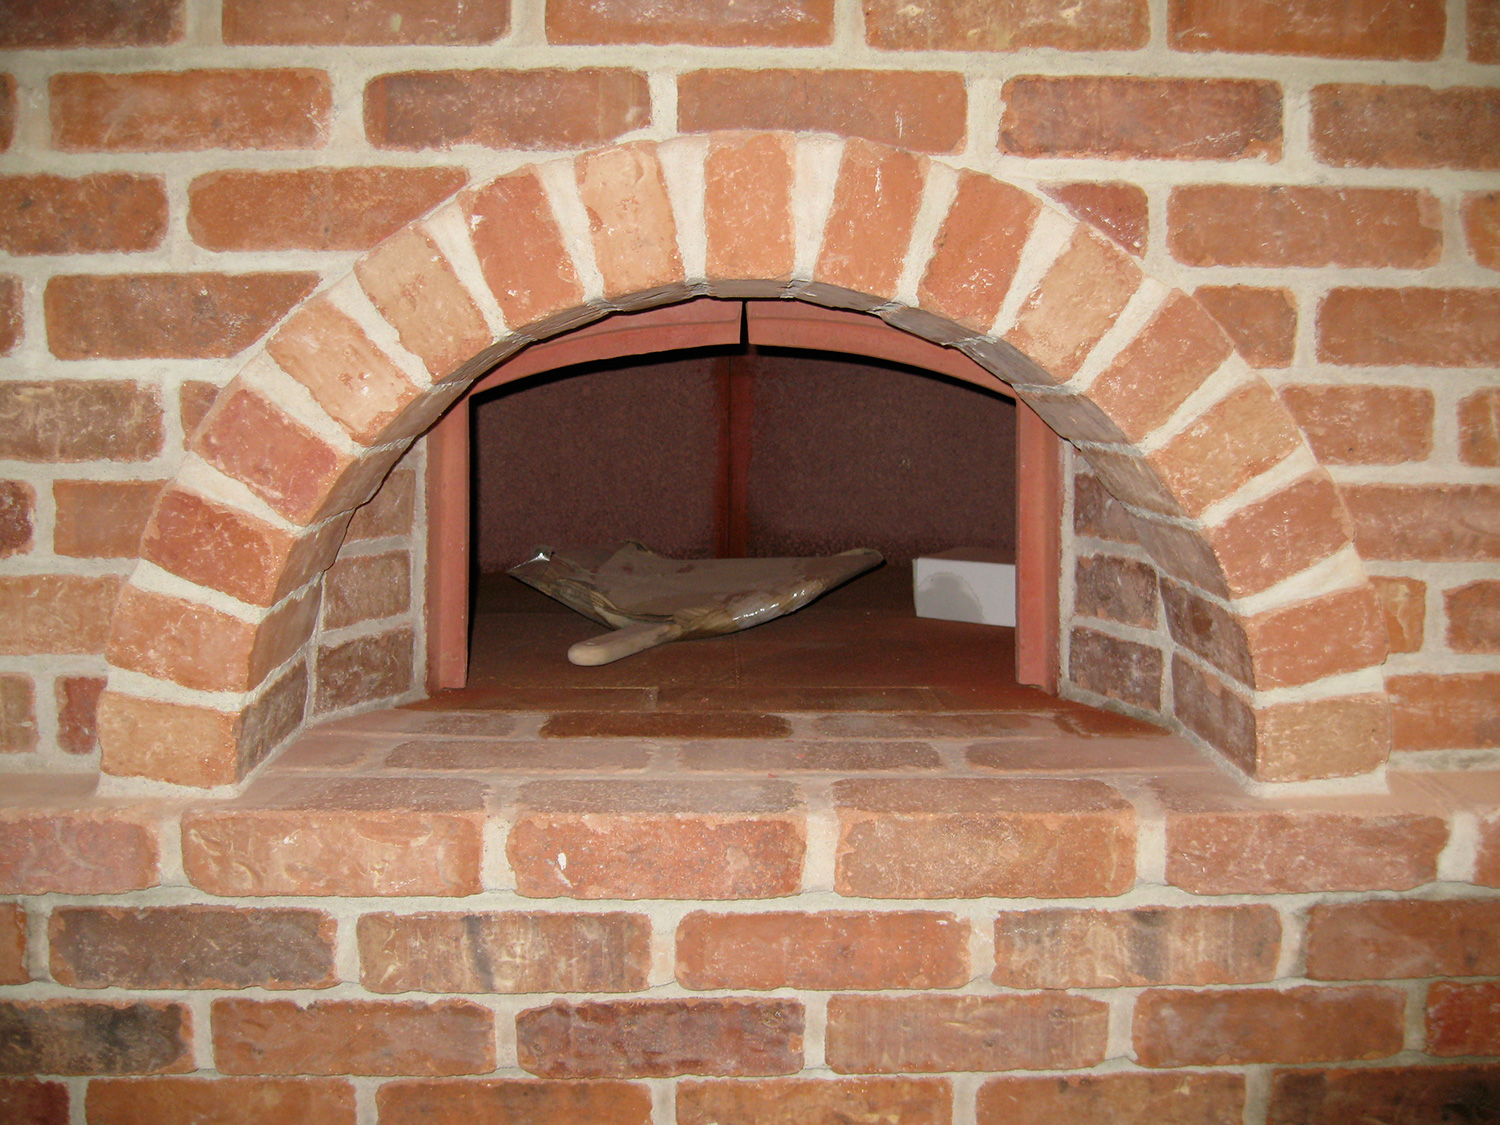 Custom pizza oven for a great kitchen feature. Gallatin, NY.